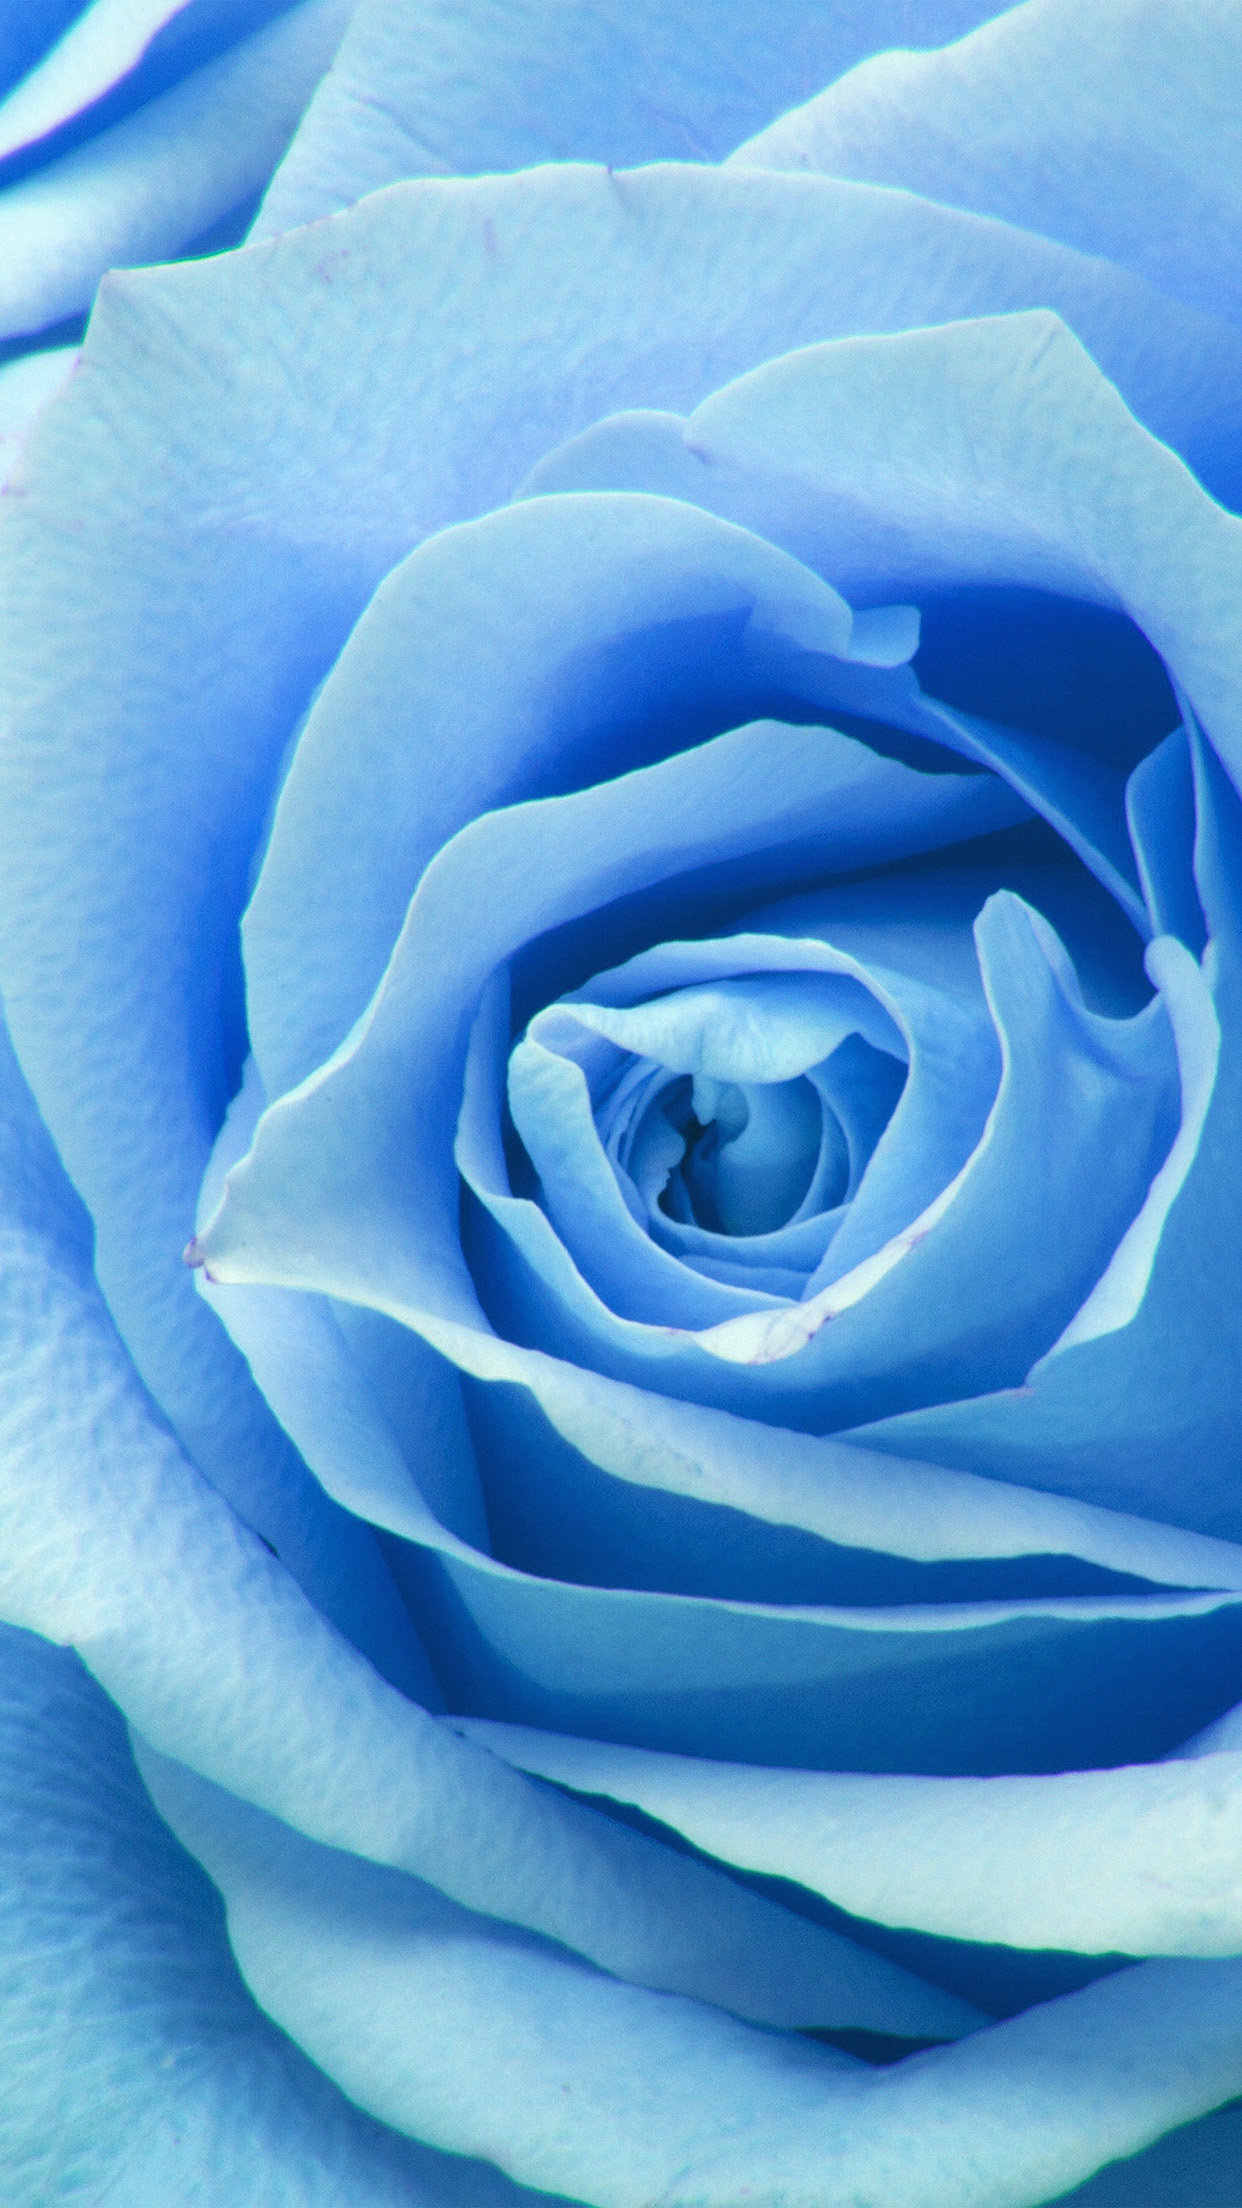 Cute Wallpapers For Iphone 6 Hd Ne44 Flower Blue Rose Zoom Love Wallpaper